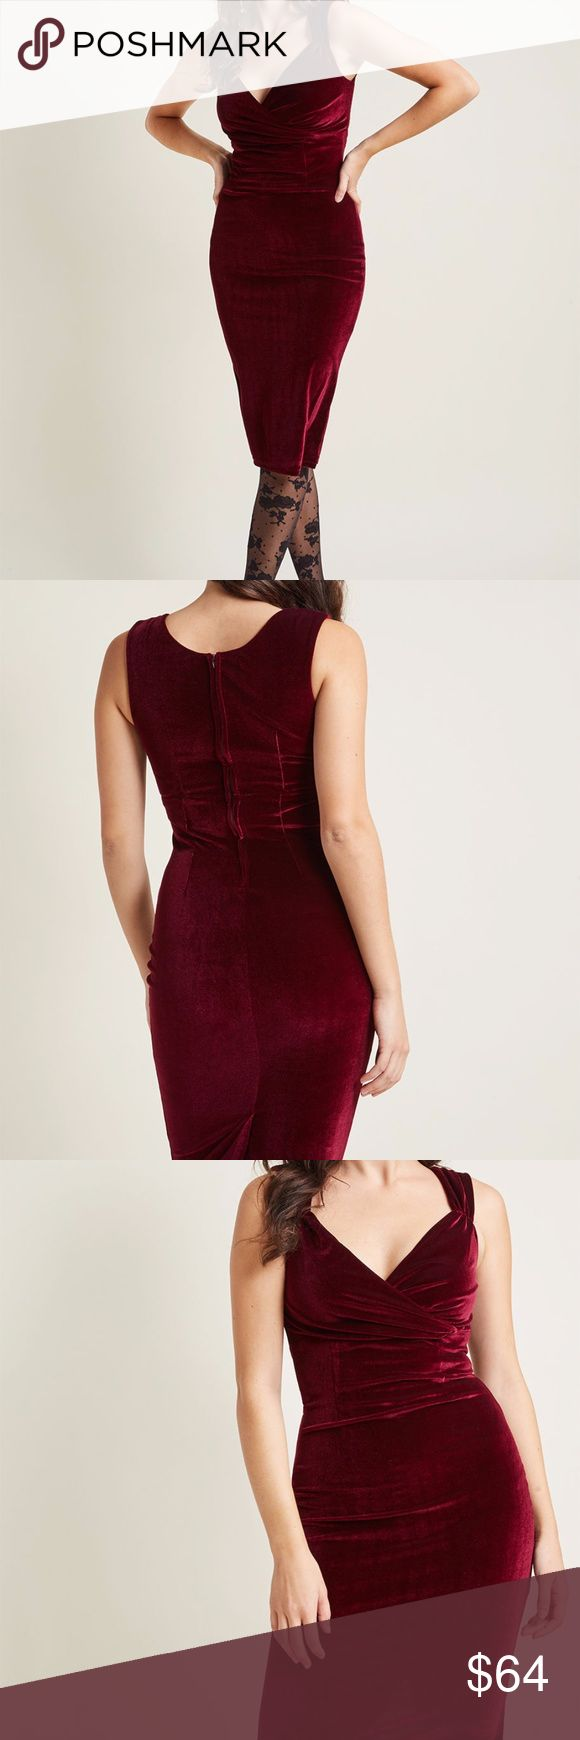 Modcloth's Lady Love Song Velvet Dress in Merlot Lady Love Song Velvet Dress in Merlot...From Modcloth: Who wouldn't want to croon a ballad when they see you in this sultry frock? In a melodic, shimmering maroon velvet material that caresses your curves, this dress complete with a crossover sweetheart neckline and gentle pleats at the bust, is made to impress. Step into your favorite jazz club for a martini and dulcet serenade!  This item is made by Rock Steady Clothing for Modcloth.   90%…